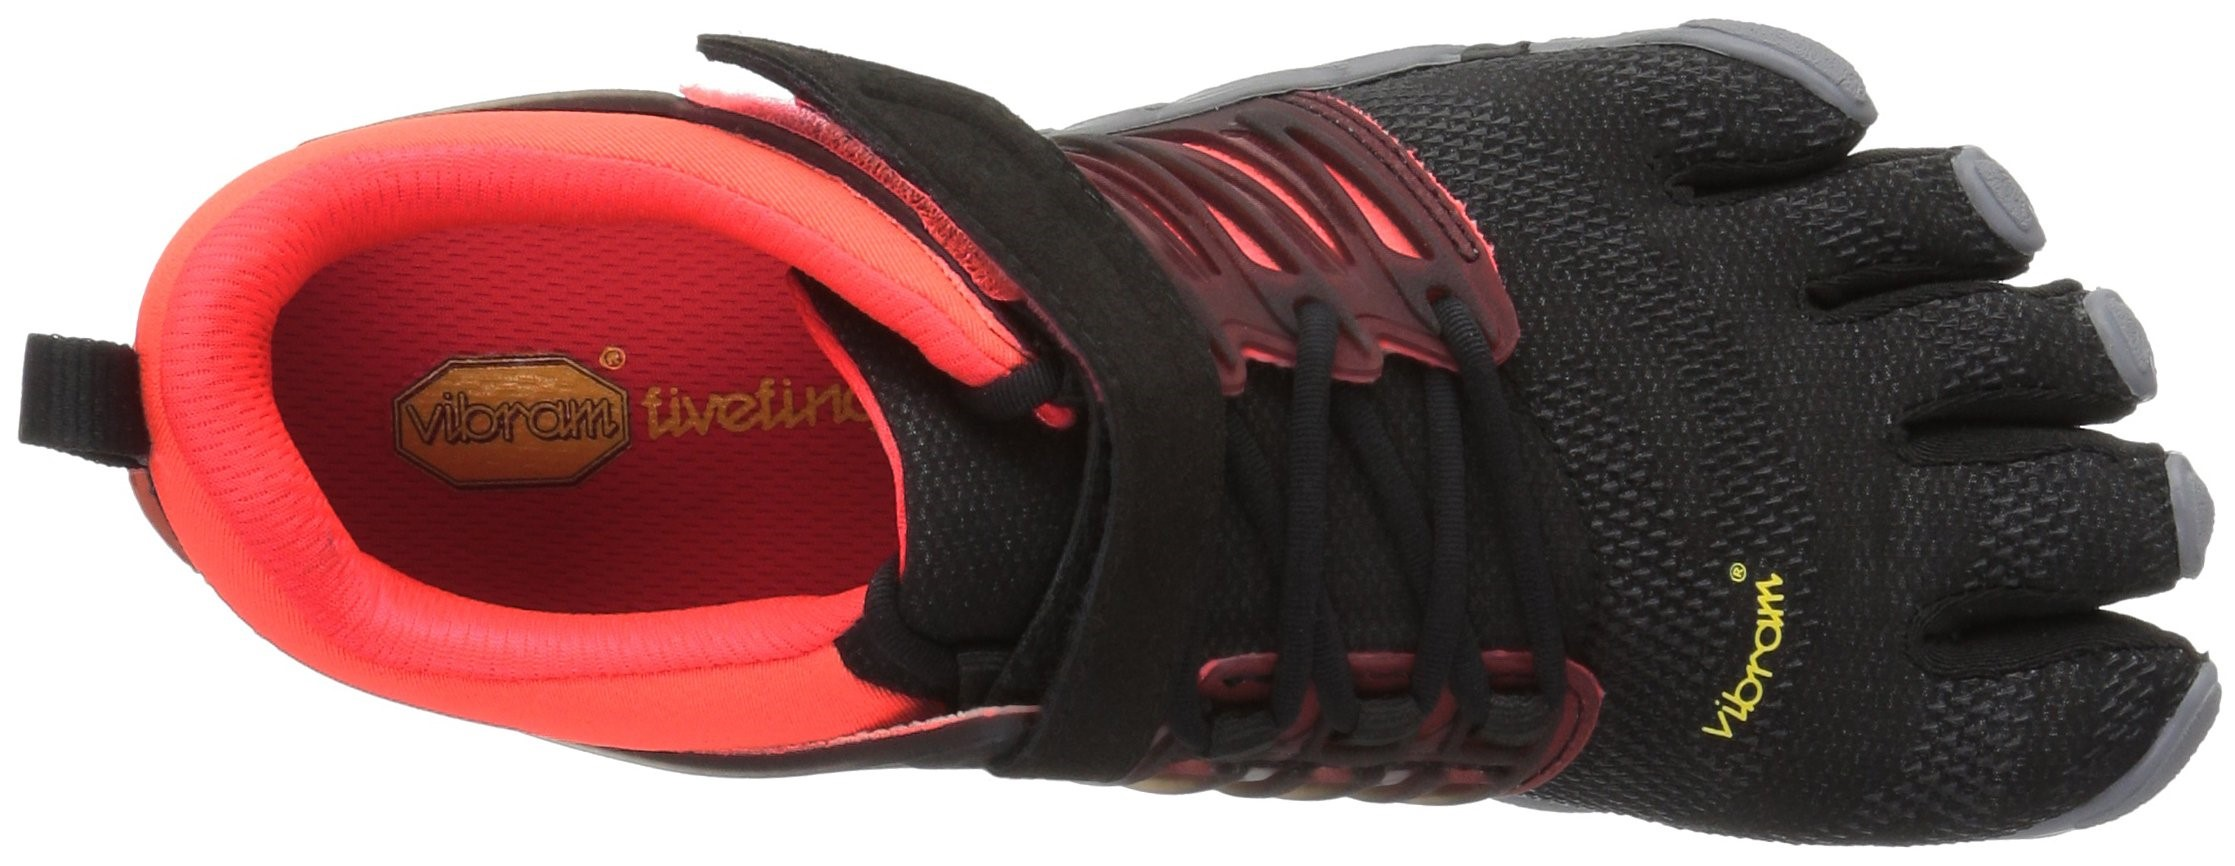 Vibram Women's V-Train Cross-Trainer Shoe Shoe Cross-Trainer Black/Coral/Grey 23e459